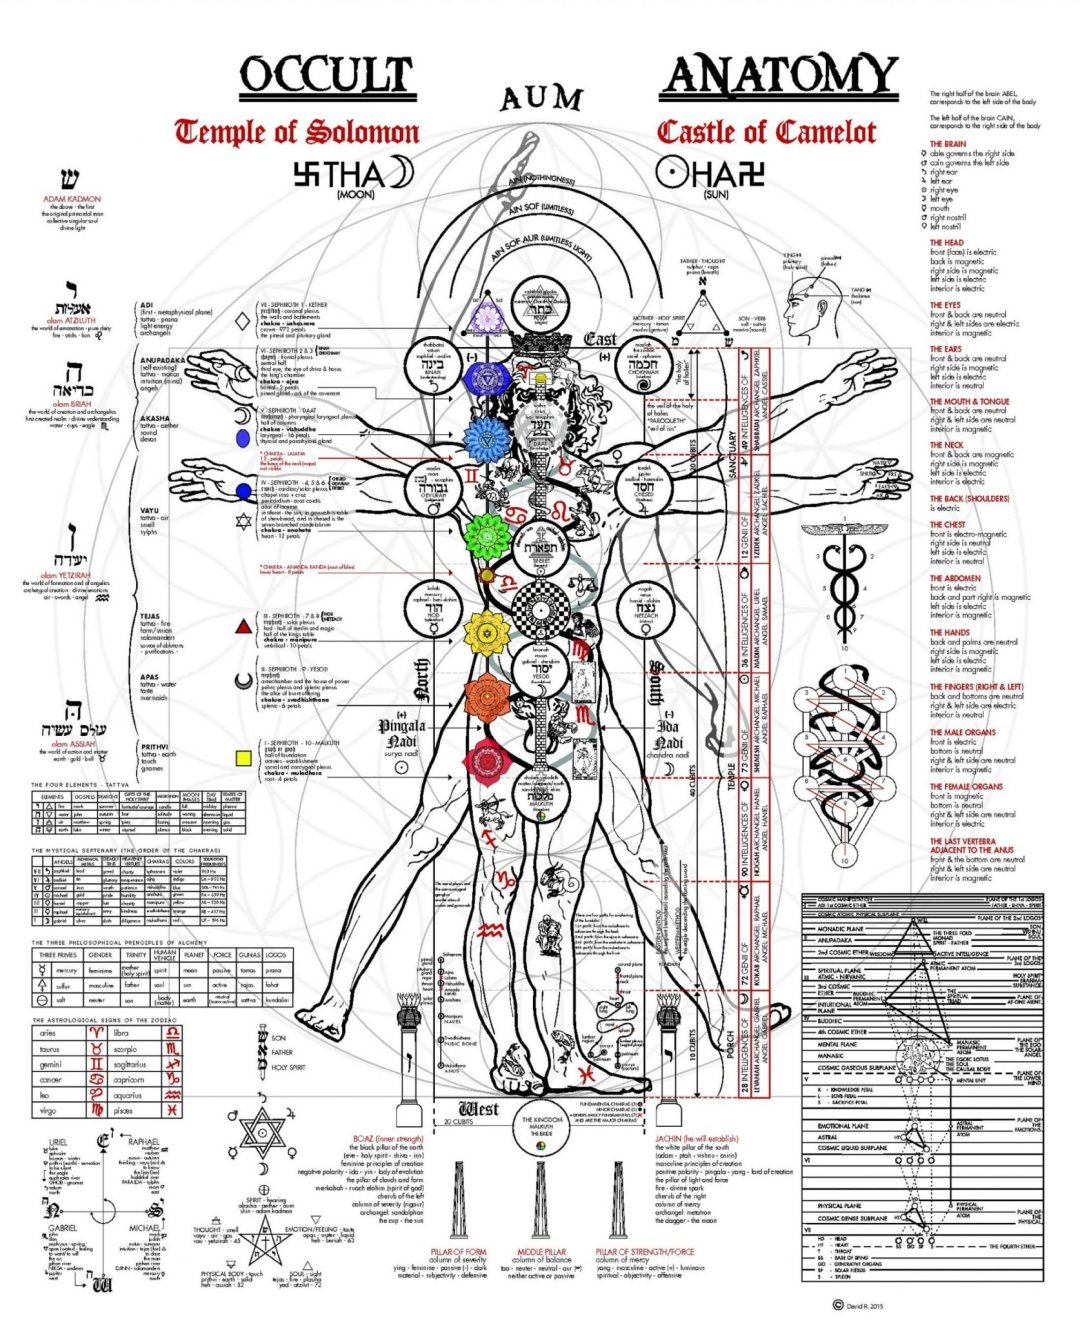 OCCULT ANATOMY of MAN / ESOTERIC Subtle Energy Body 🔐ADEPT ...